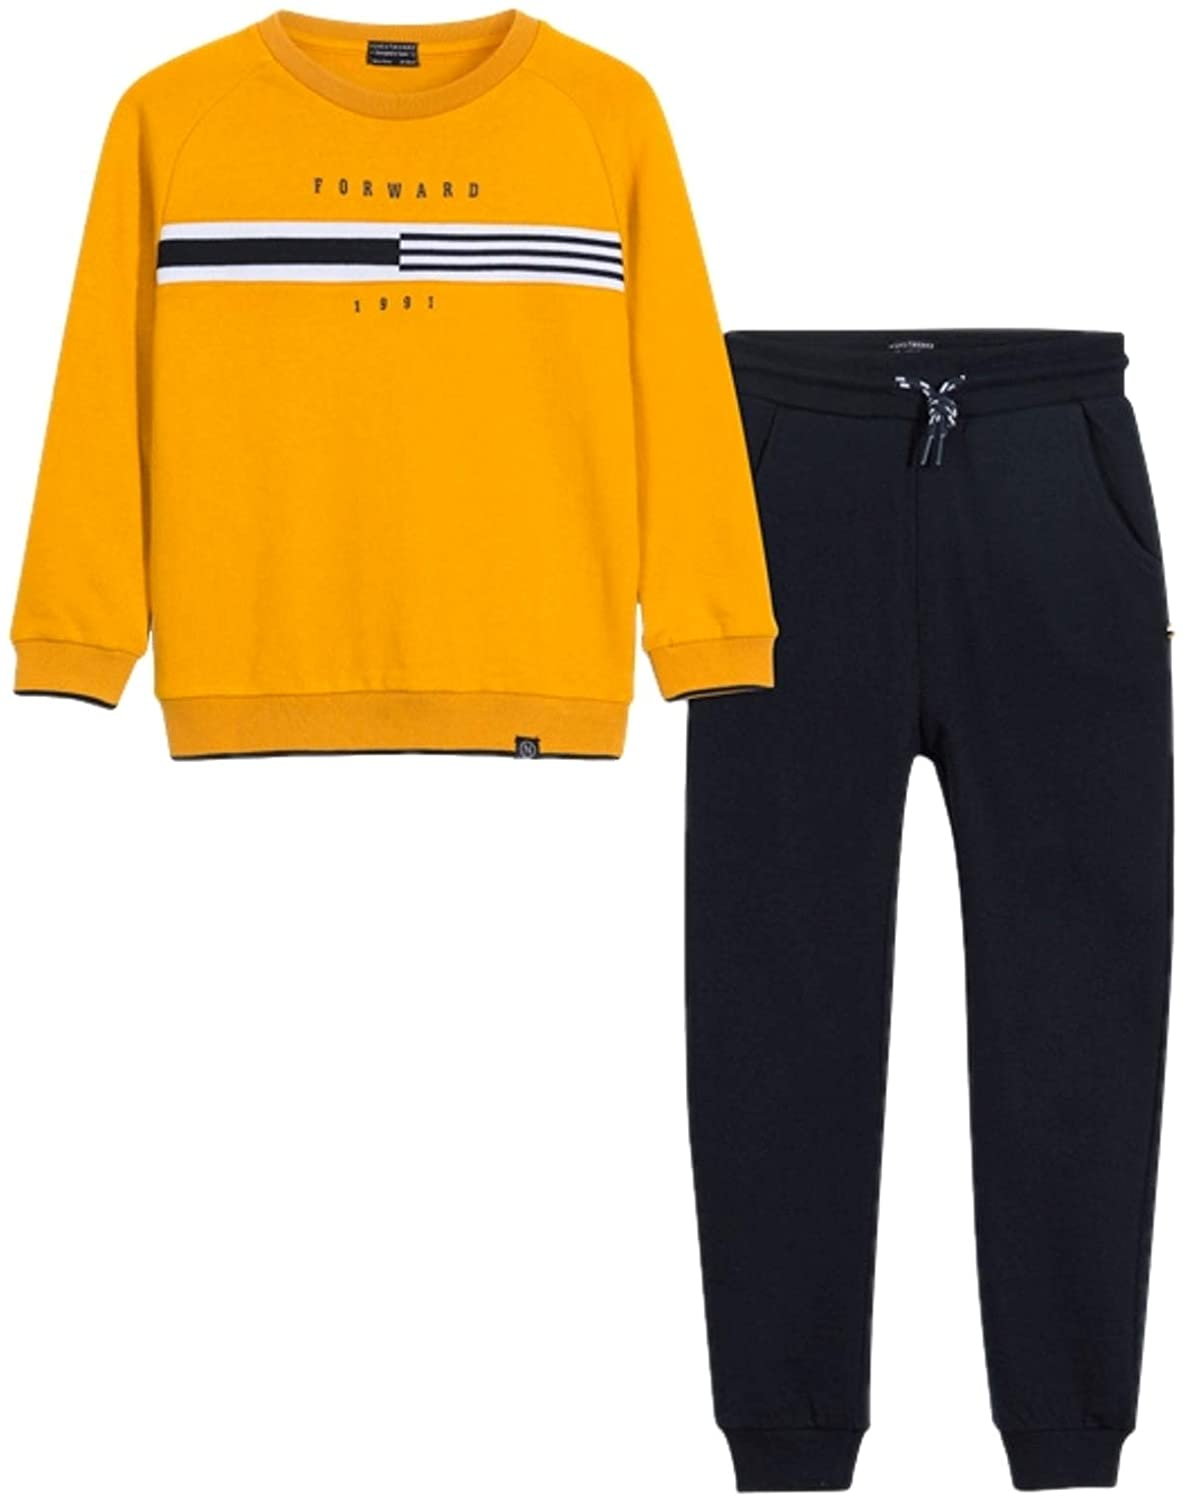 Mayoral - Tracksuit for Boys - 7807, Wheat